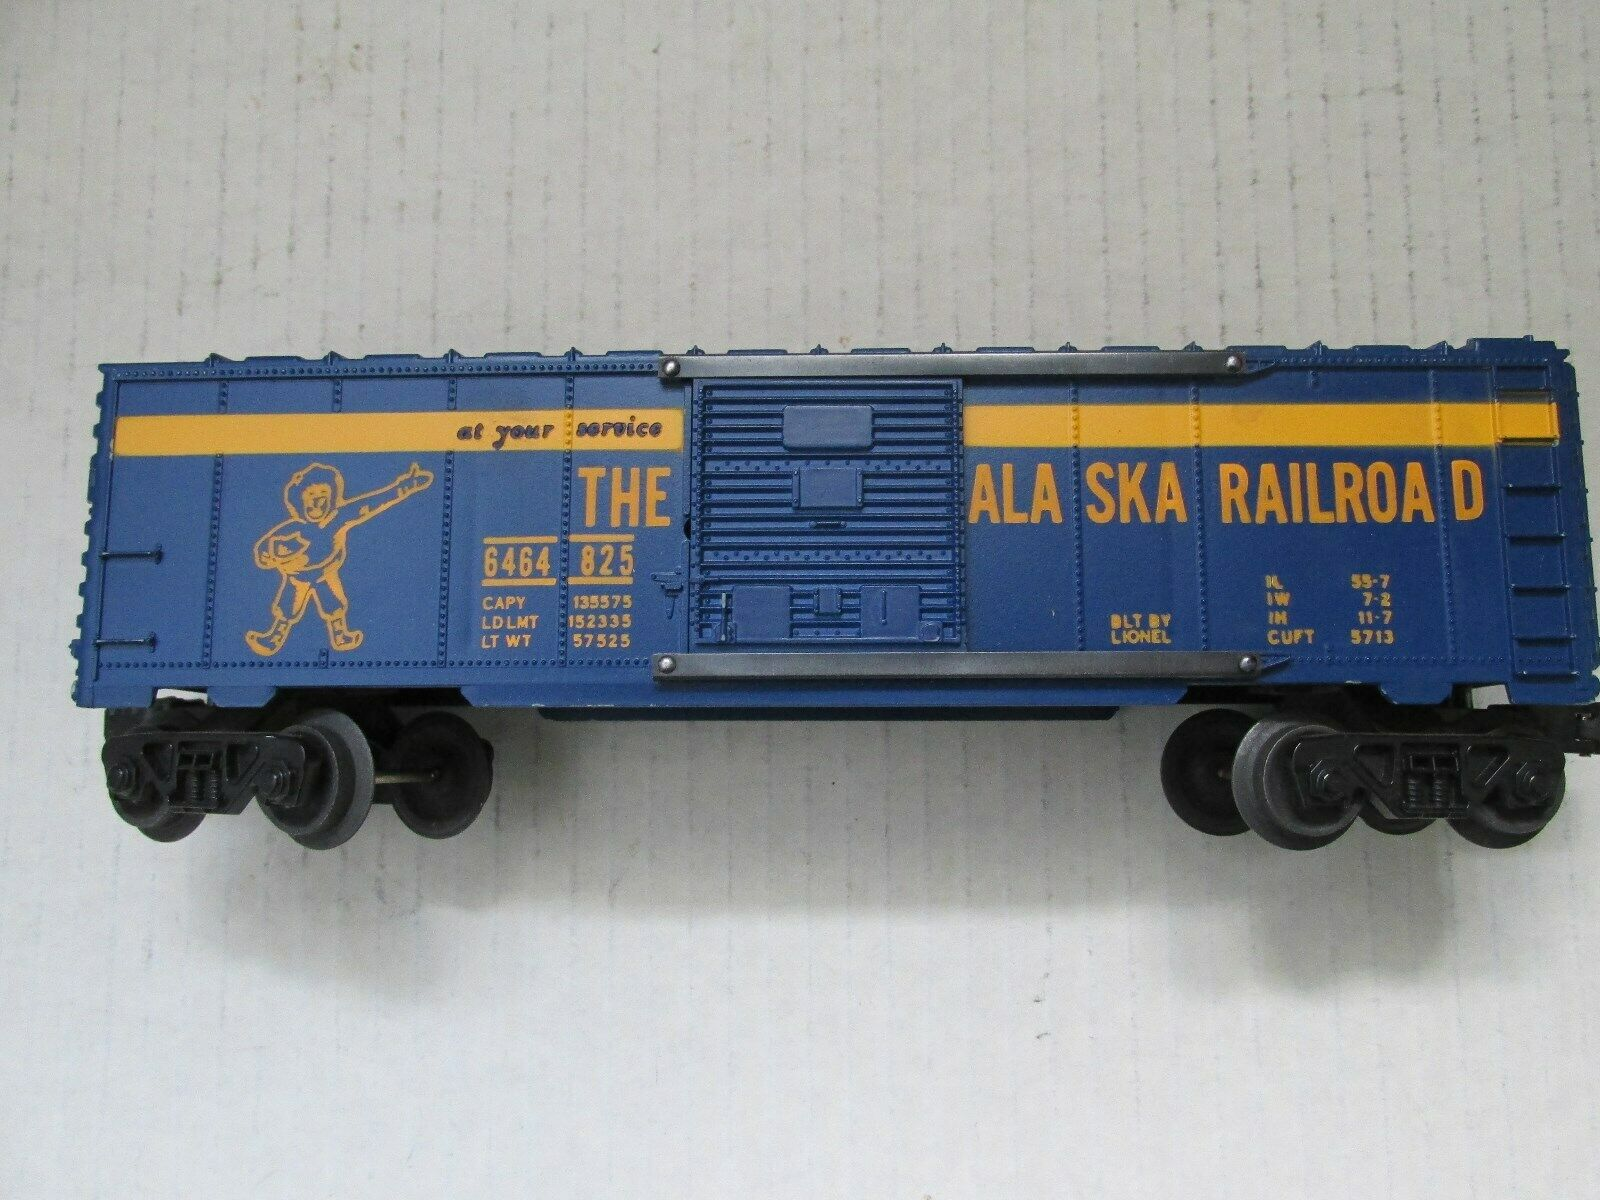 Lionel 6464-825 Alaska Box Car En Perfecto Estado